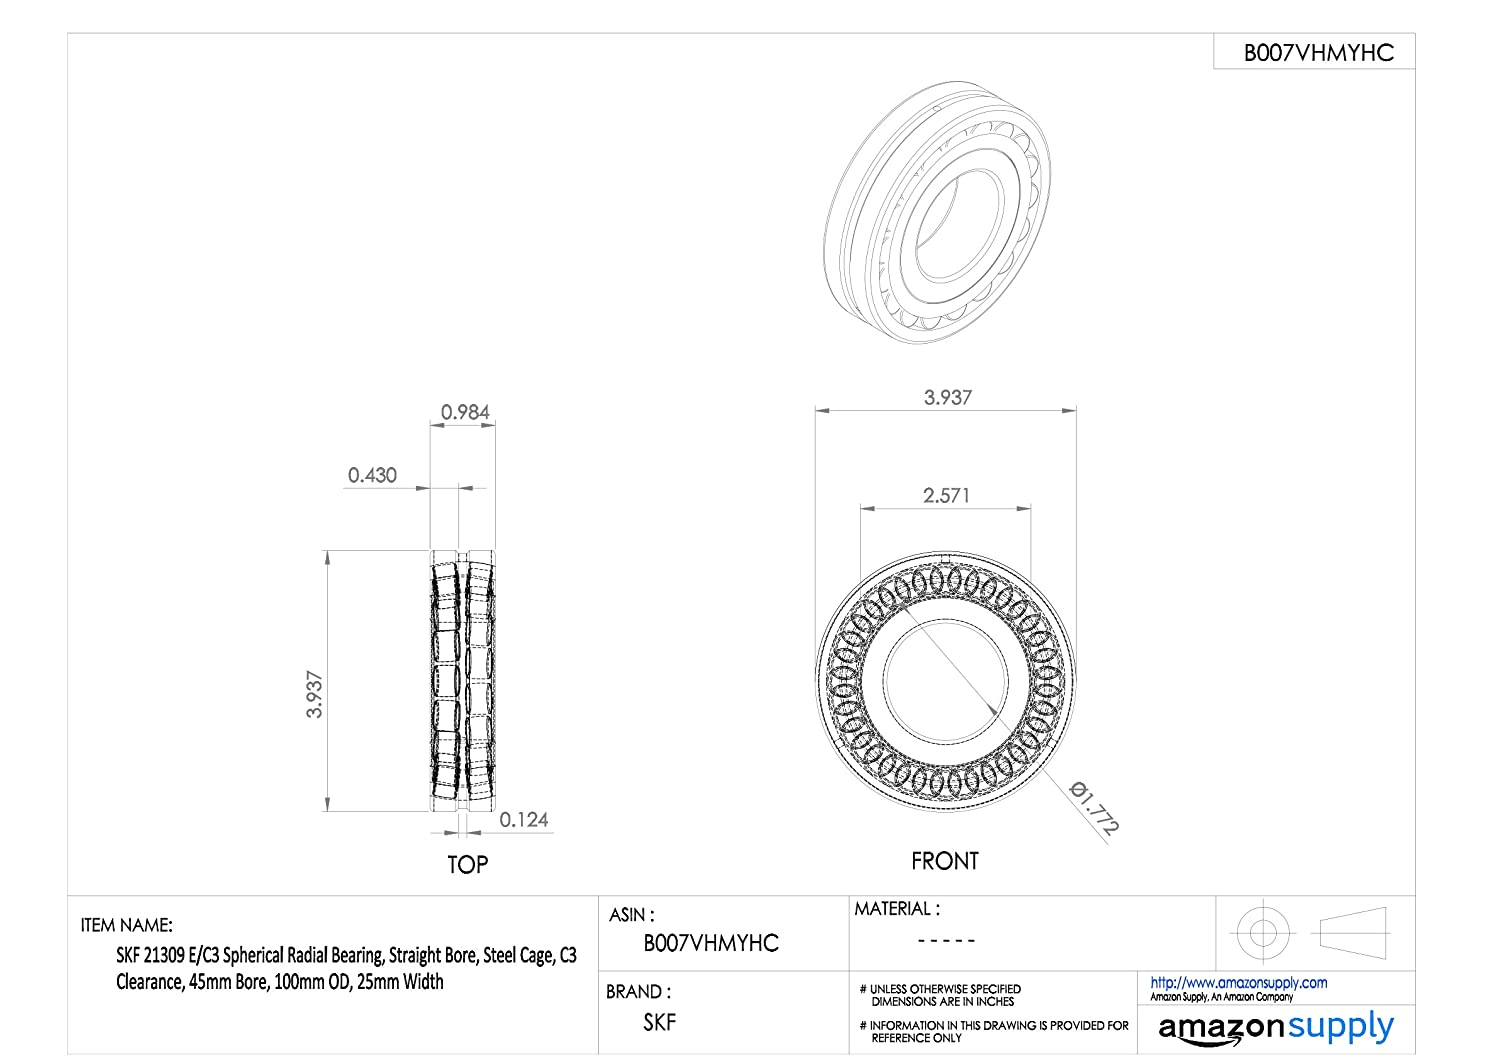 Straight Bore 100mm OD Steel Cage 45mm Bore SKF 21309 E//C3 Spherical Radial Bearing 25mm Width C3 Clearance